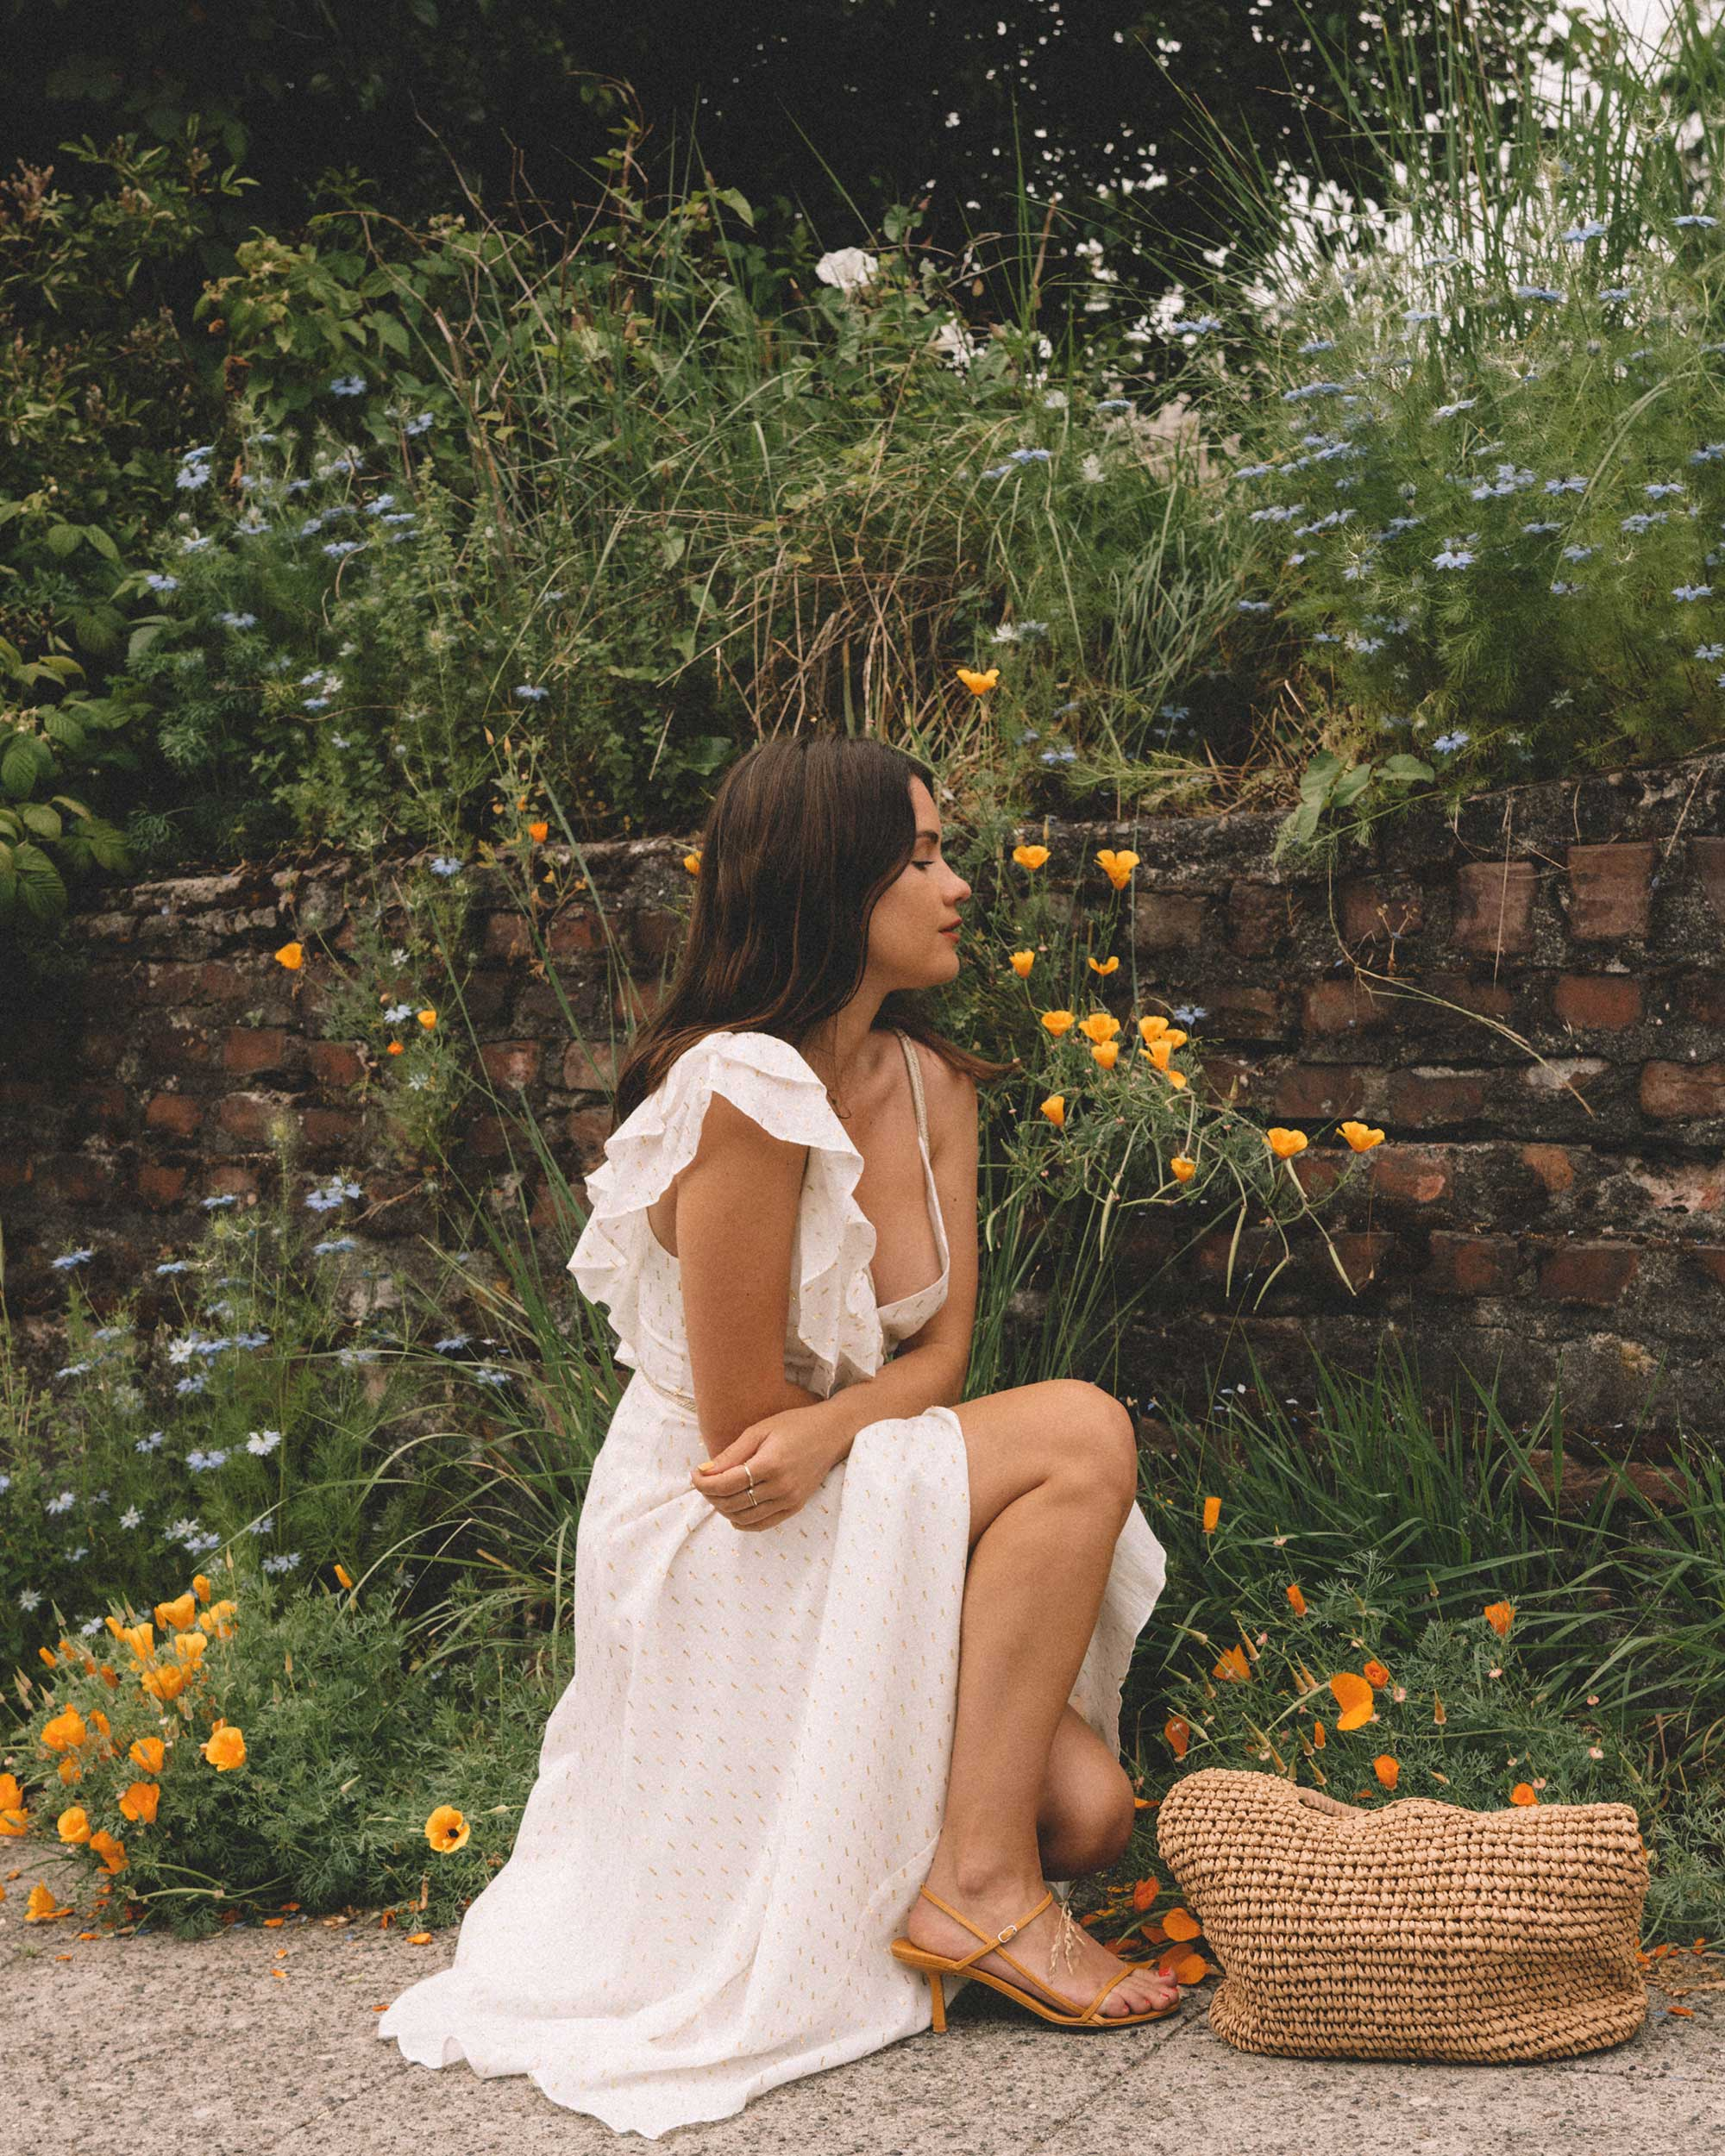 Sarah Butler of Sarah Styles Seattle wears BCBGMAXAZRIA White Asymmetric Midi Wrap Dress for the perfect summer outfit | @sarahchristine -12.jpg